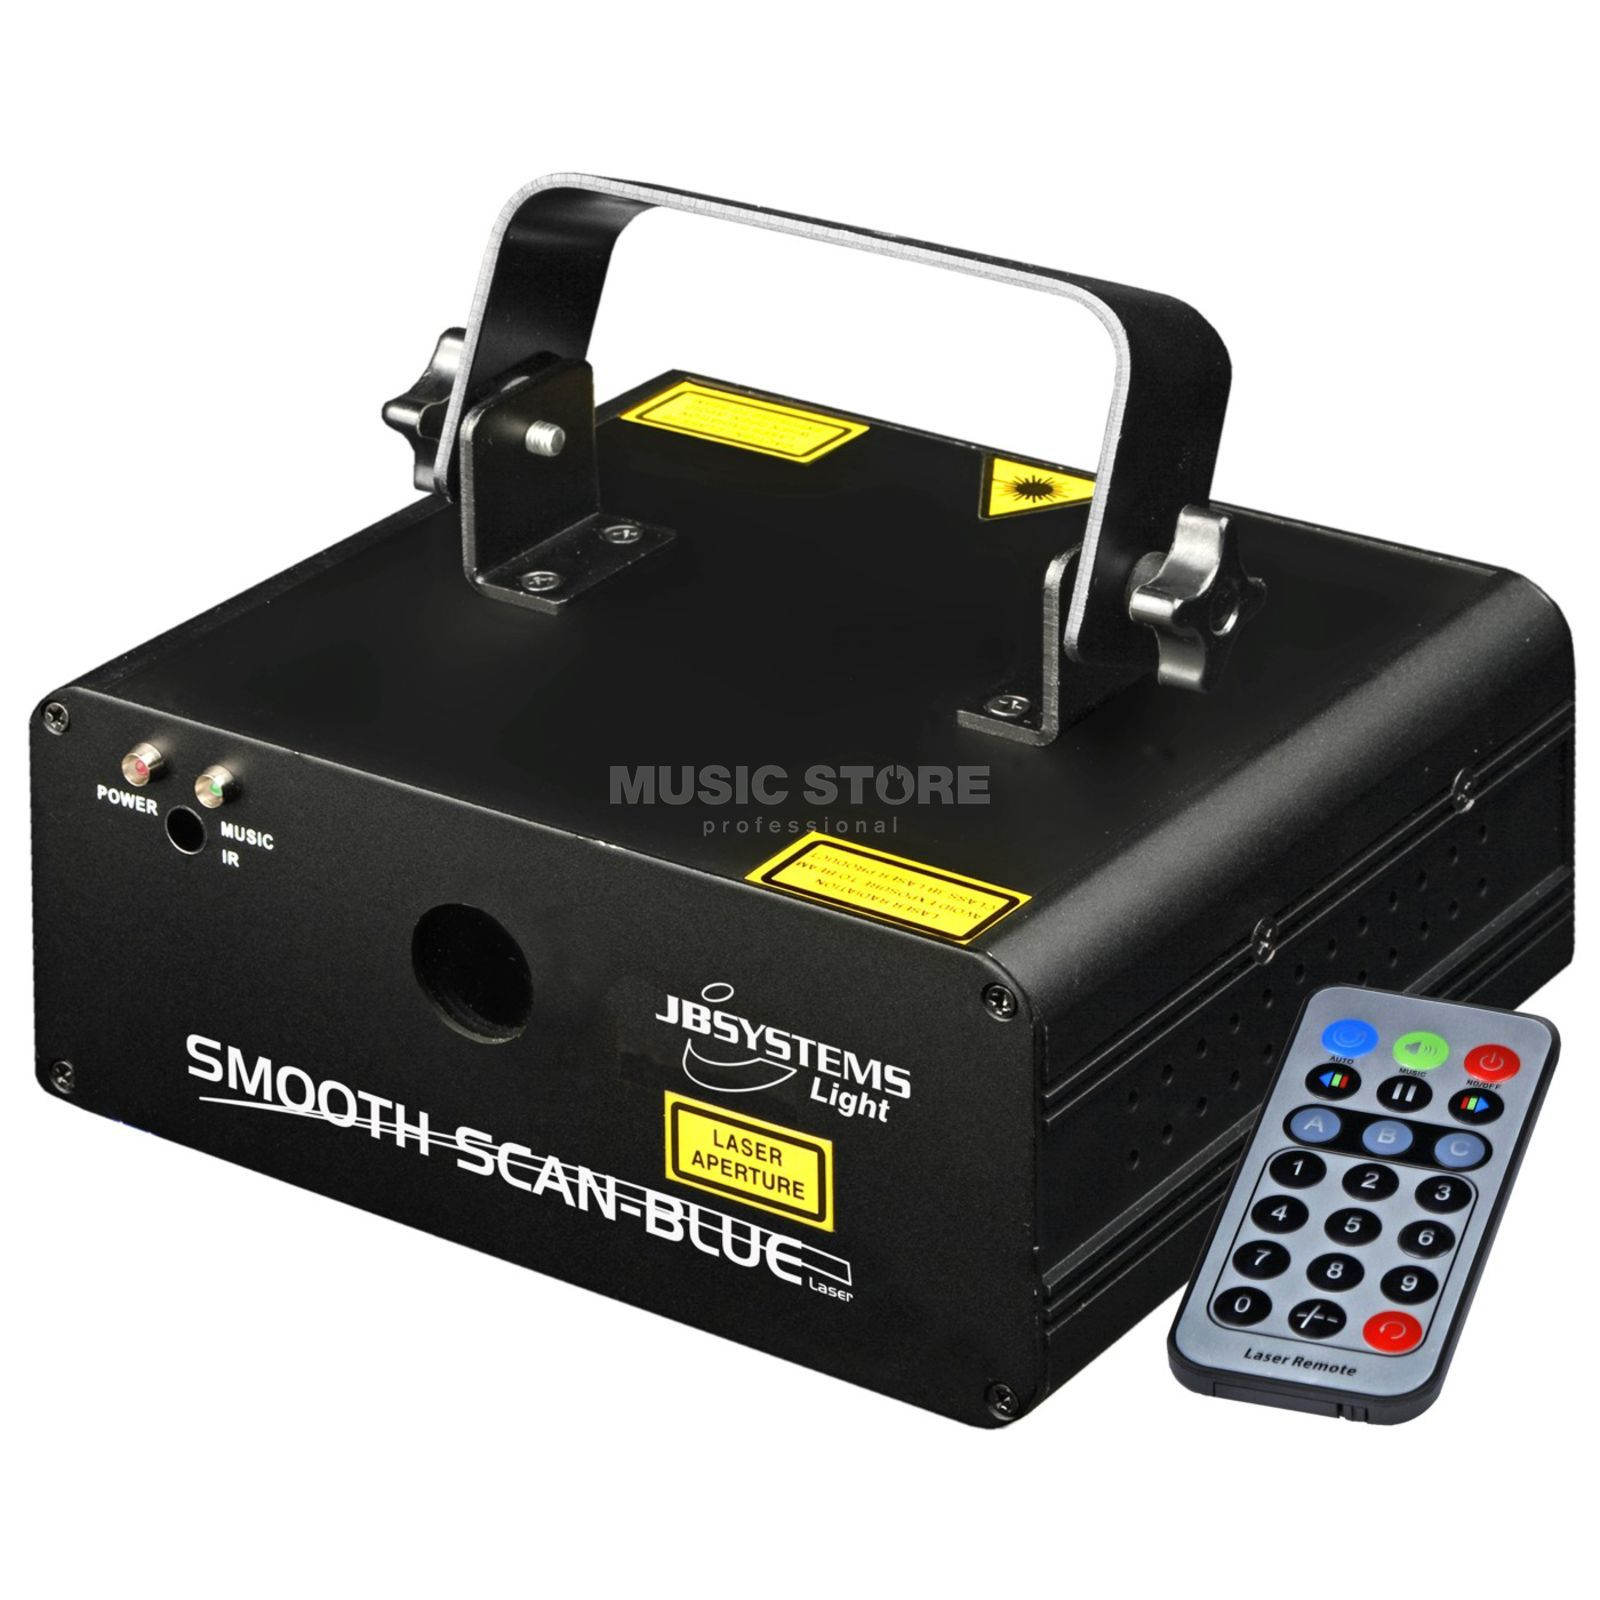 JB Systems Smooth Scan Blue Laser  Produktbillede